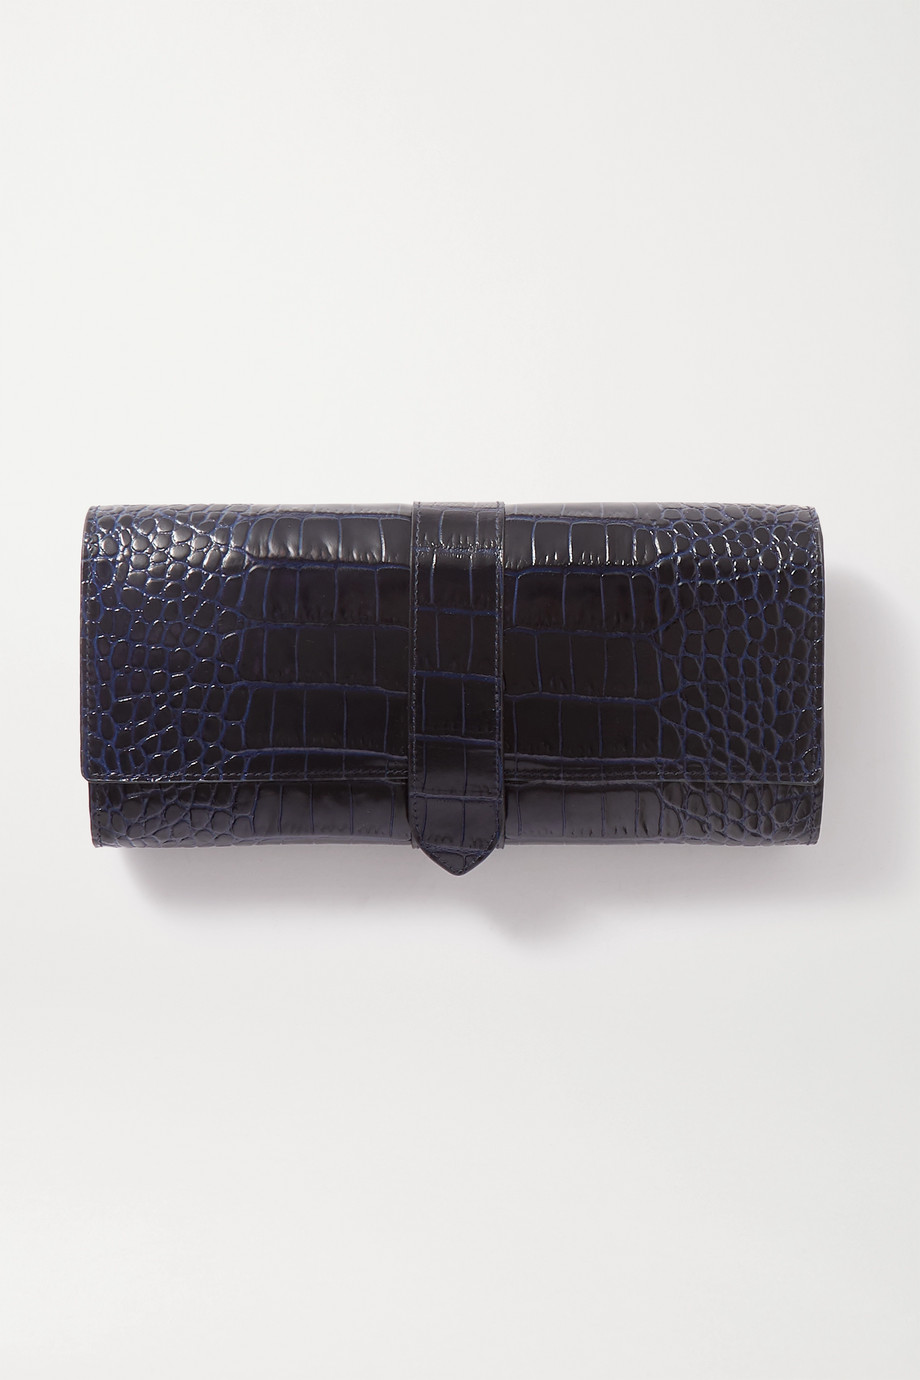 SMYTHSON Mara large croc-effect leather jewellery roll